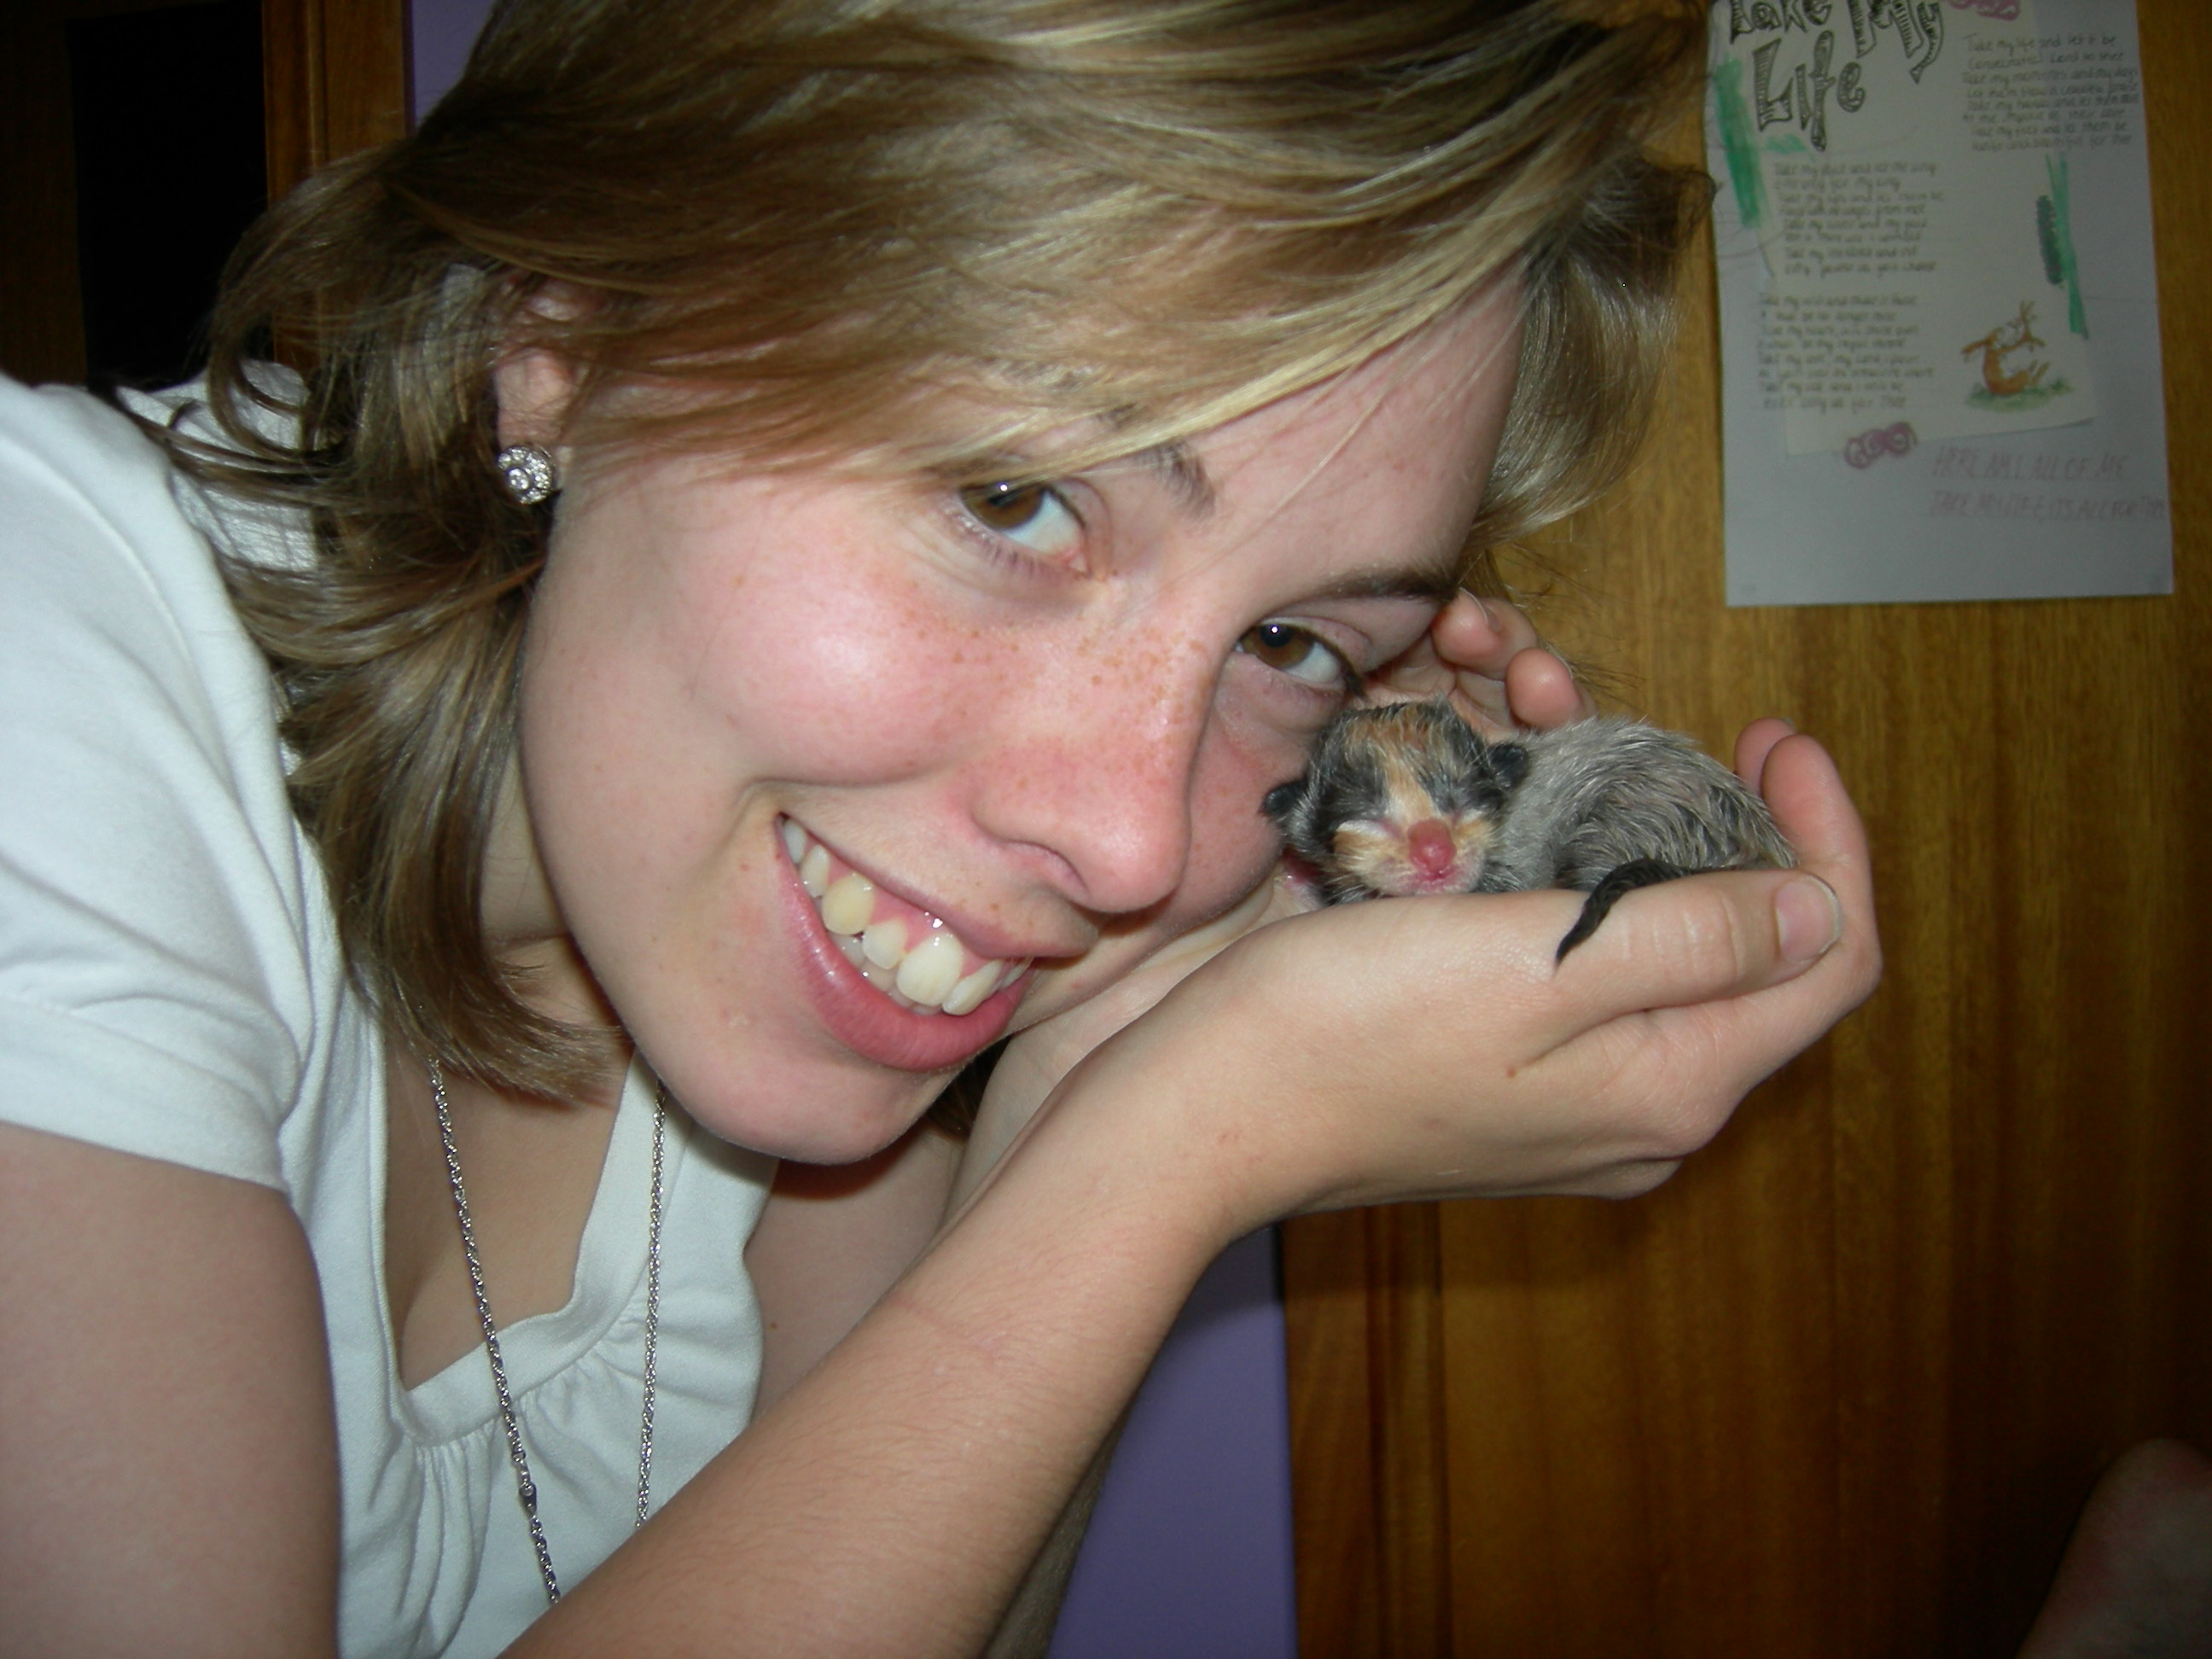 Me and the new born kitten not even an hour old!